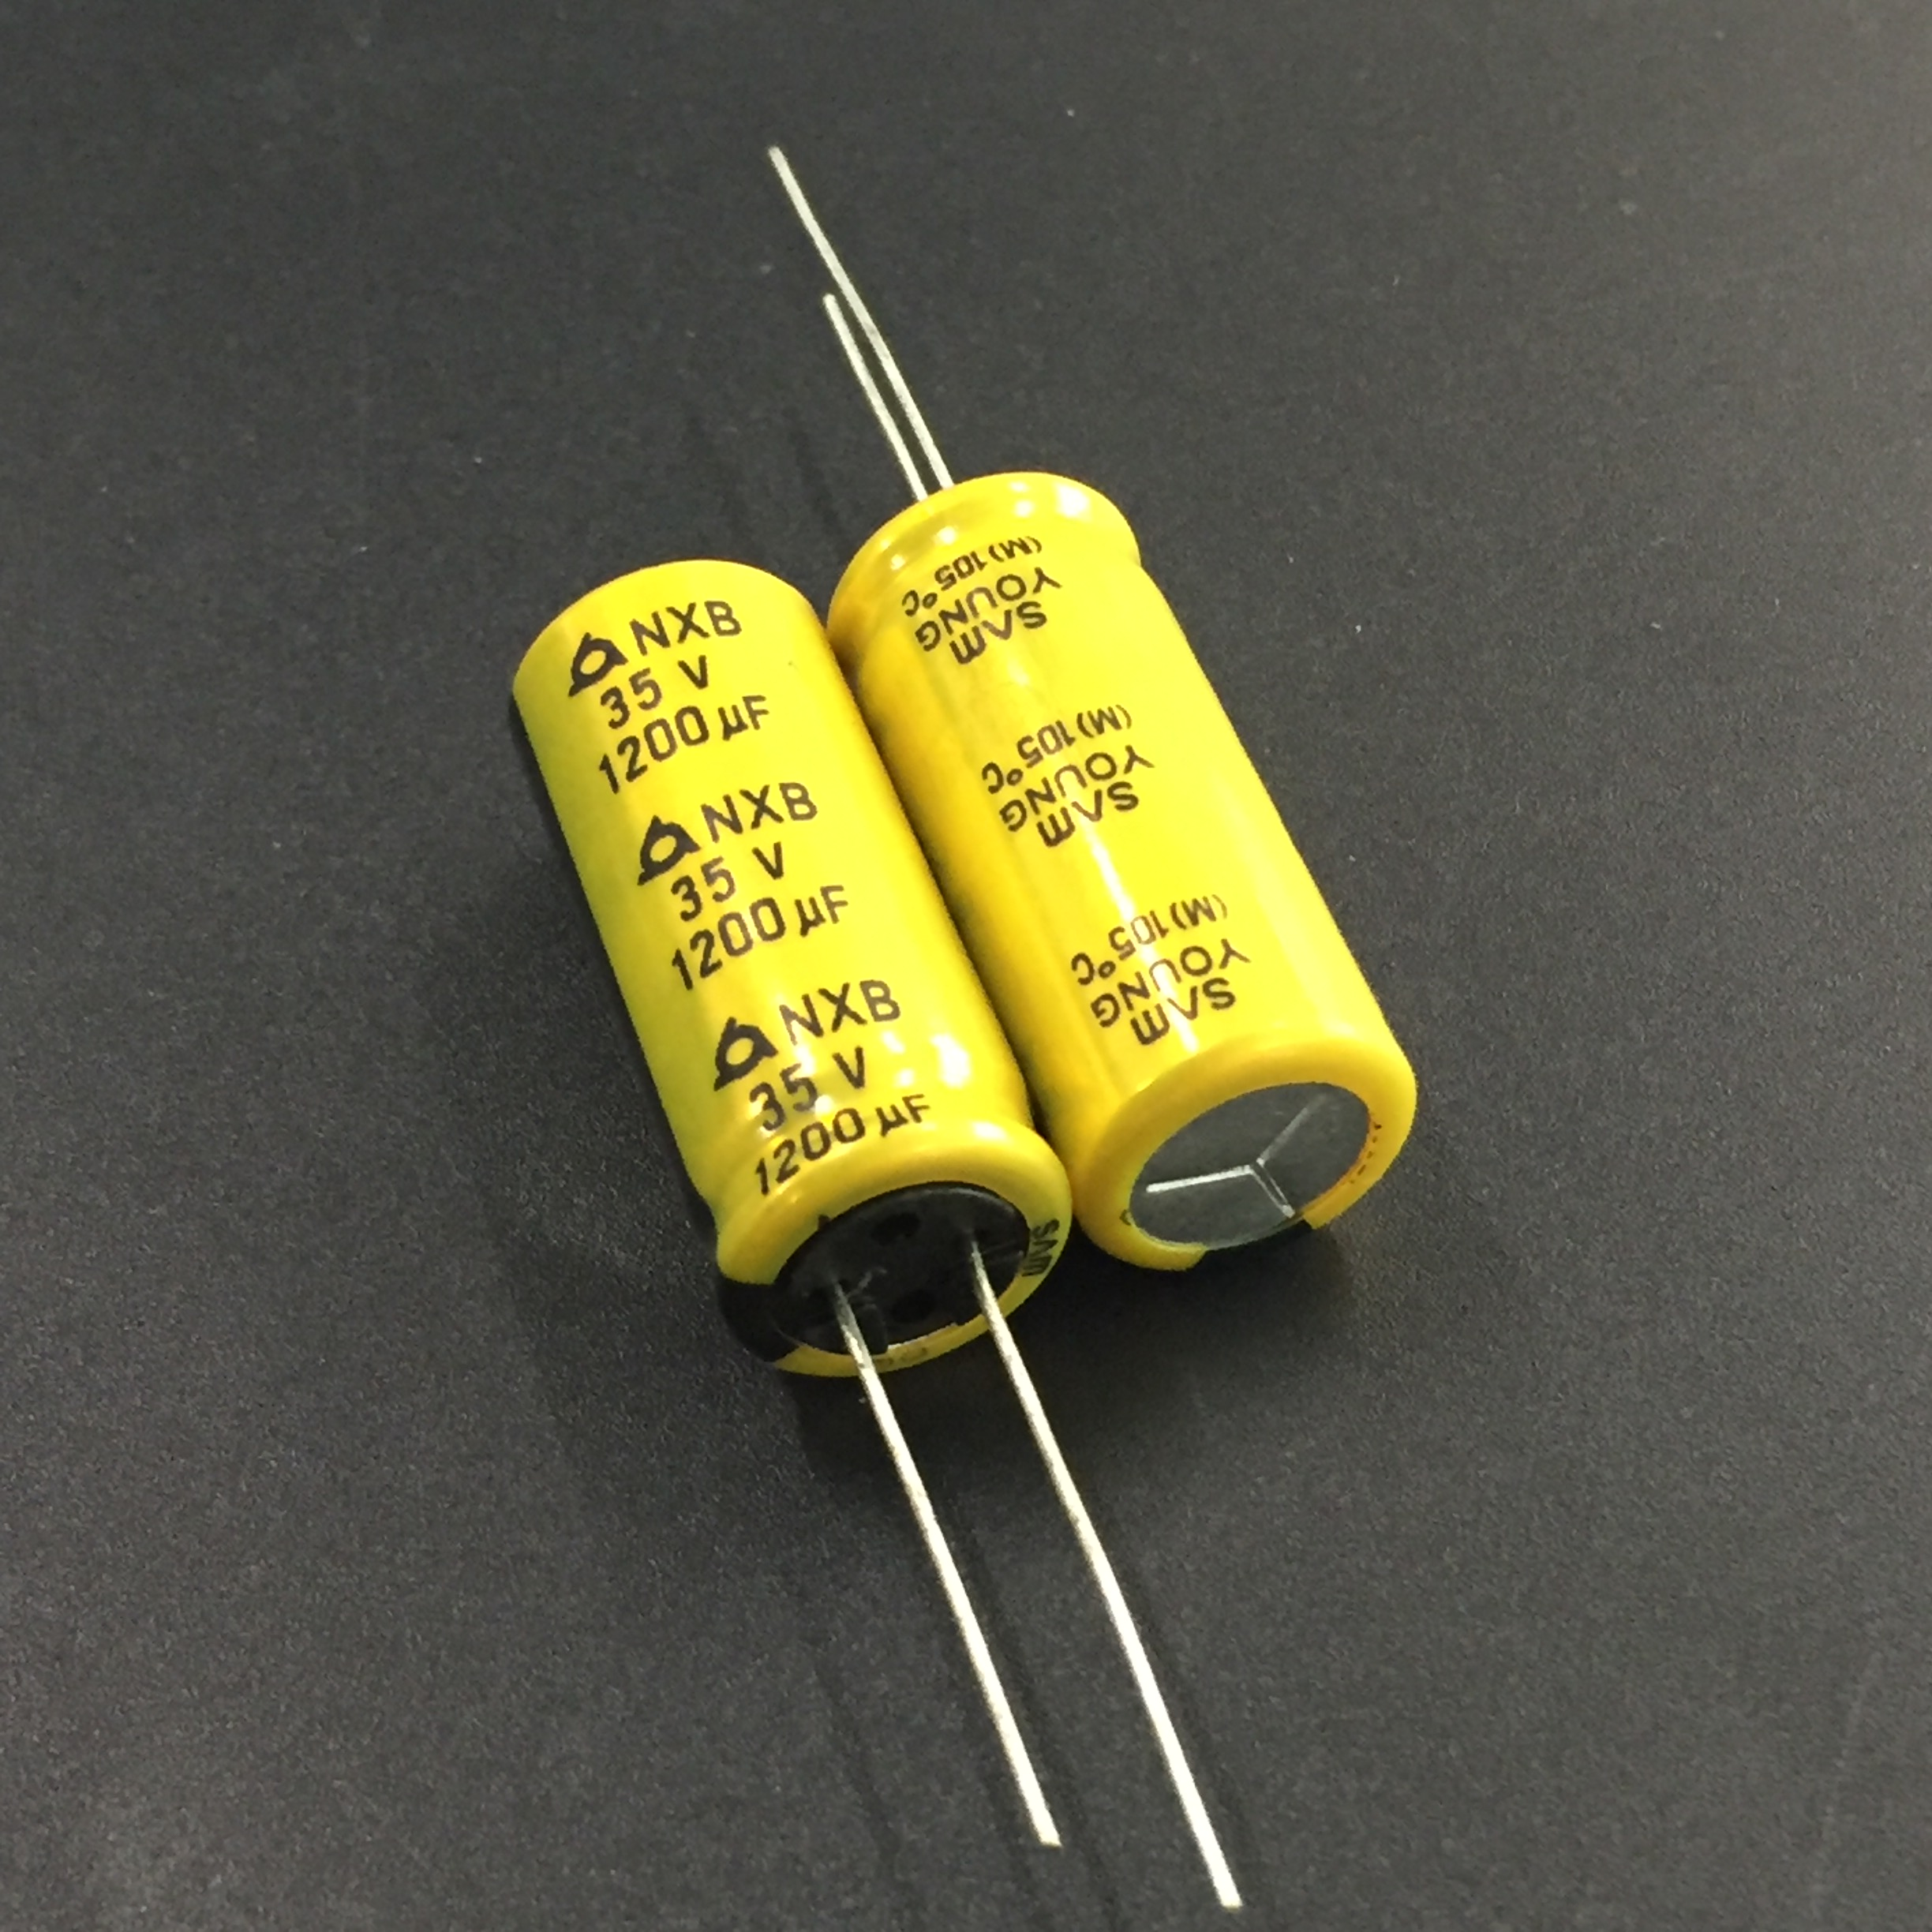 10pcs 1200uF 35V SAMYOUNG NXB Series 12.5x30mm 35V1200uF Low ImpedanceAluminum Electrolytic Capacitor